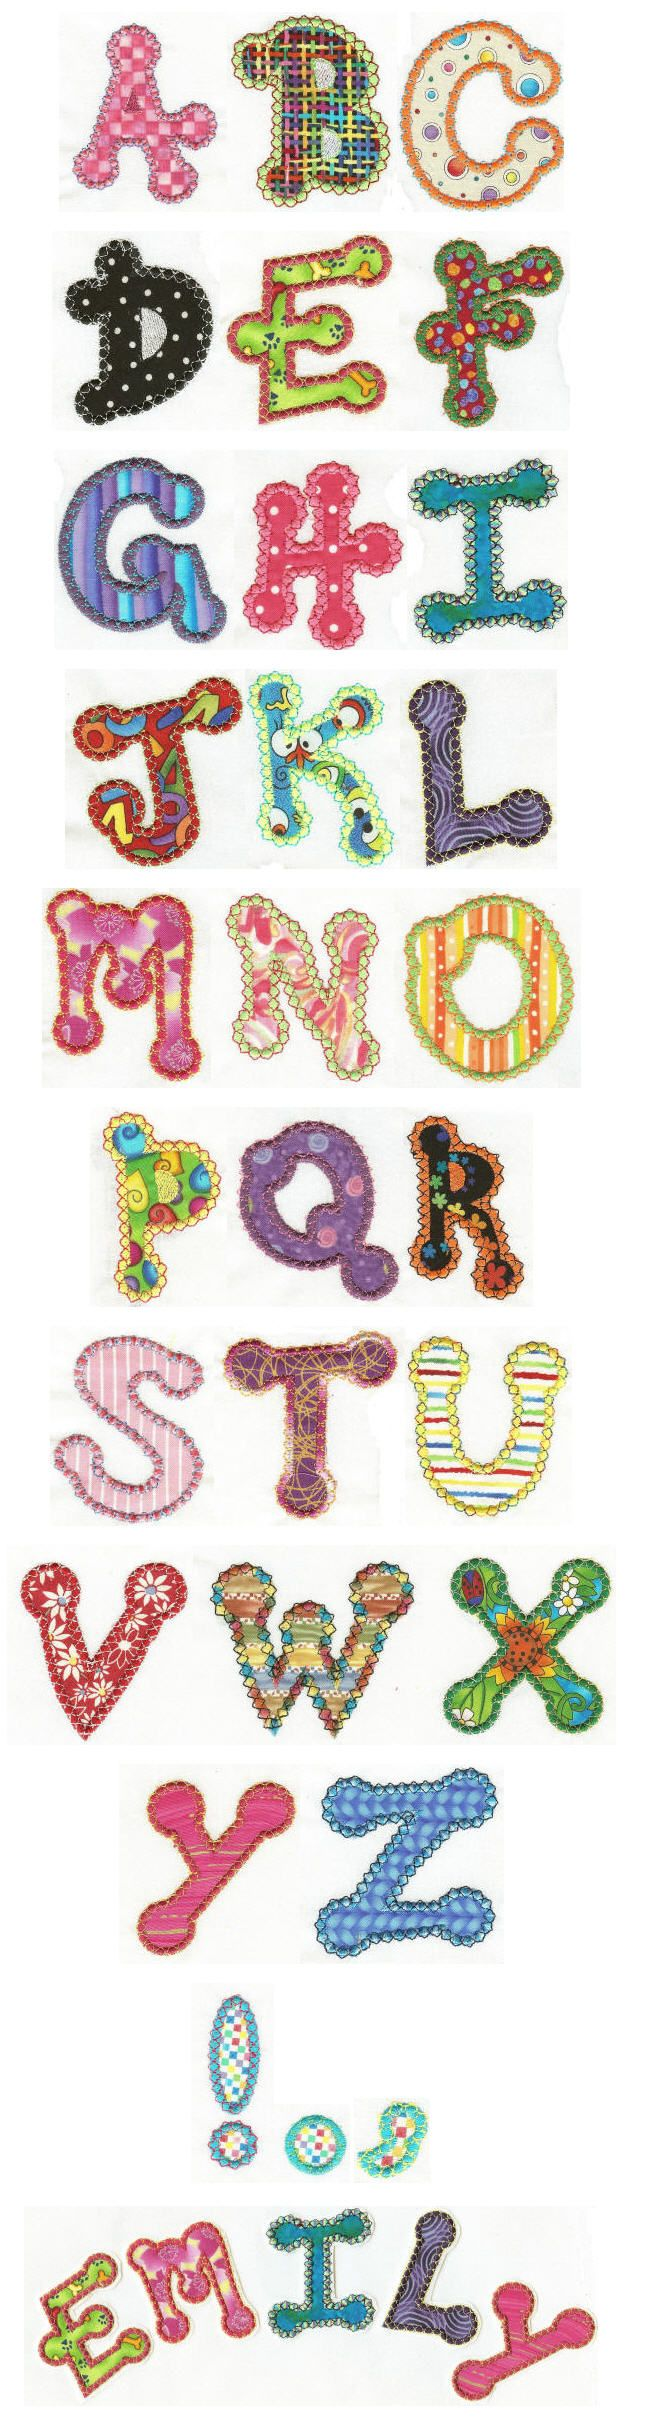 Embroidery | Free machine embroidery designs | Dotty Applique Alphabet